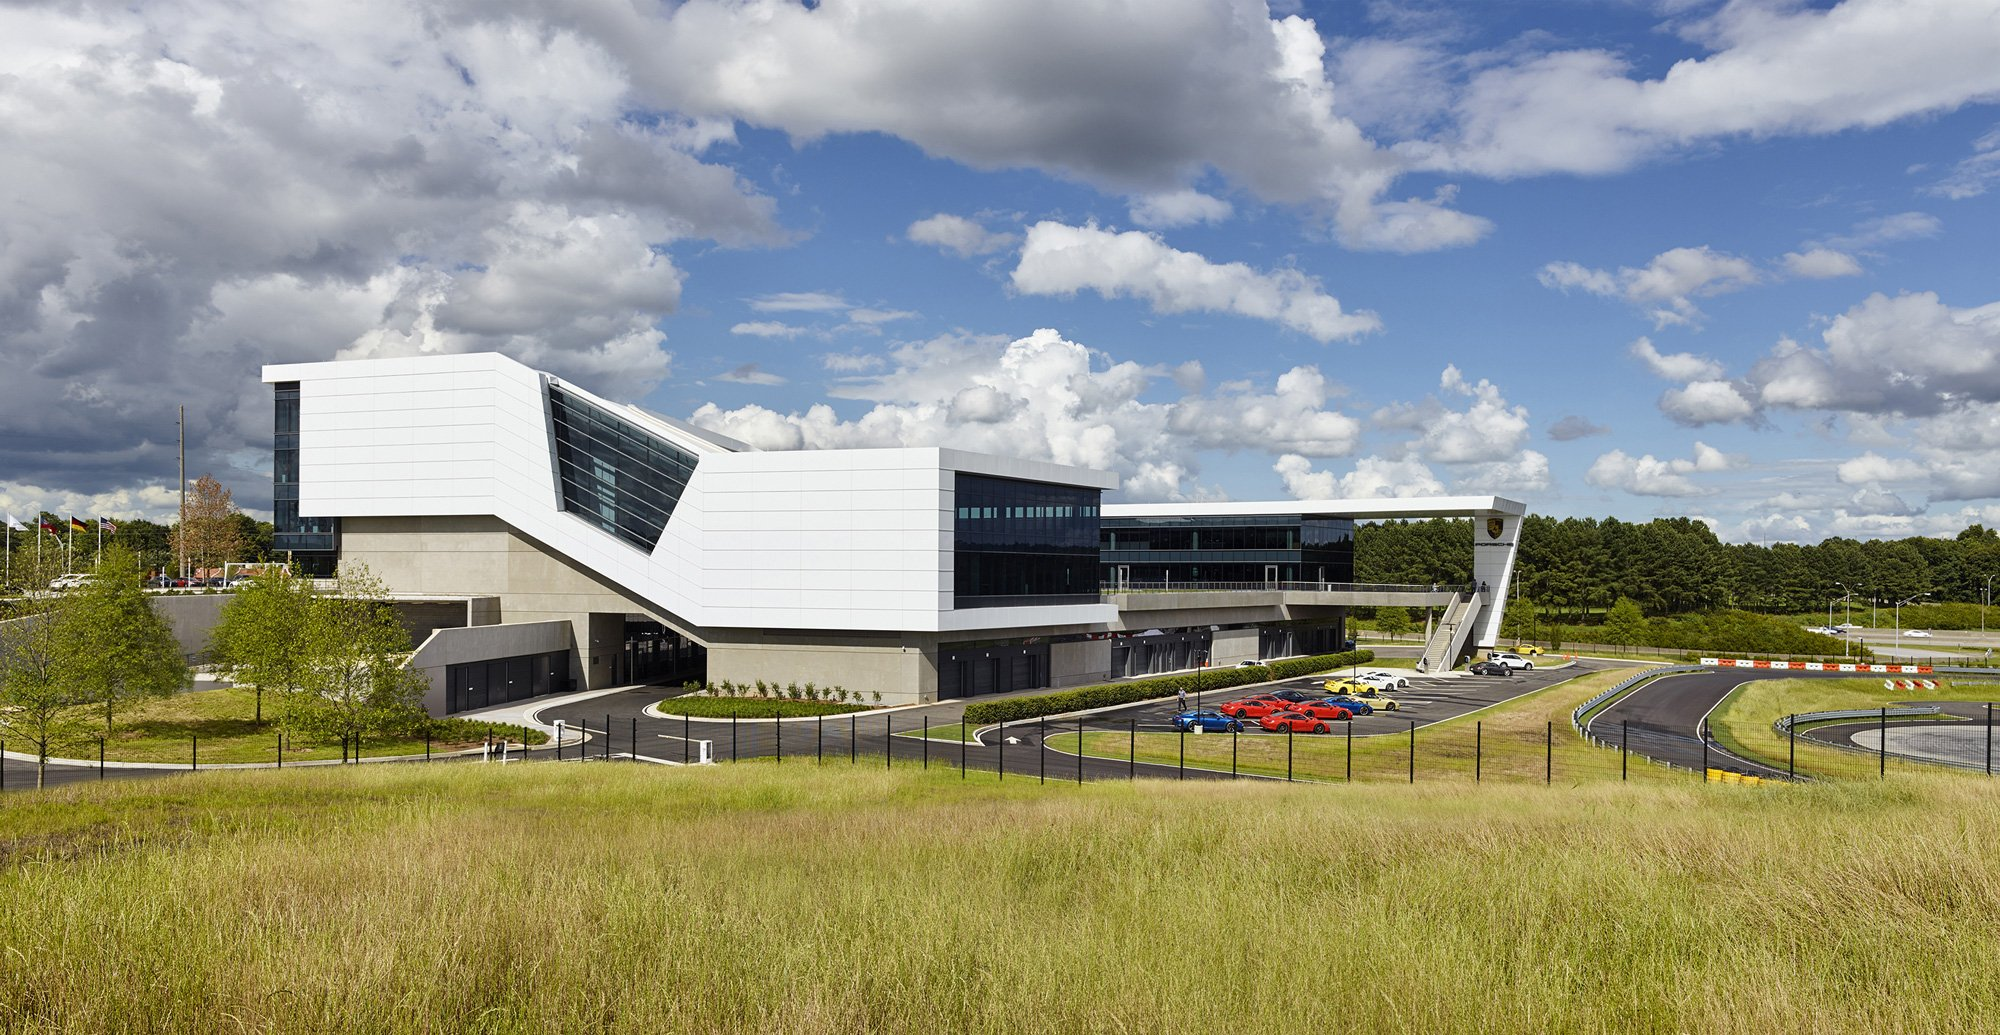 Porsche Cars North America New Headquarters